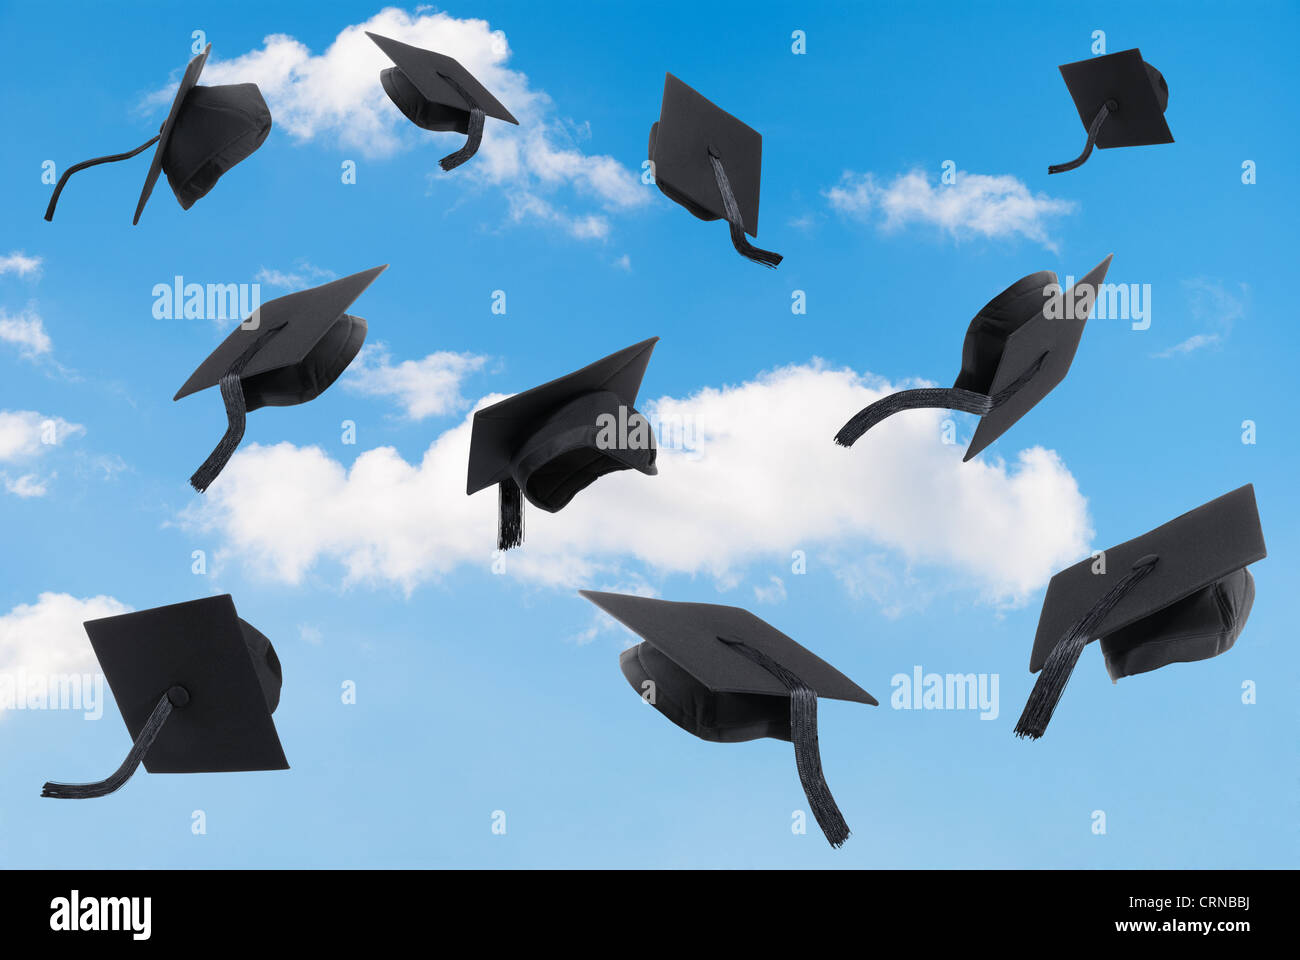 Graduation mortar boards thrown into a blue sky - Stock Image